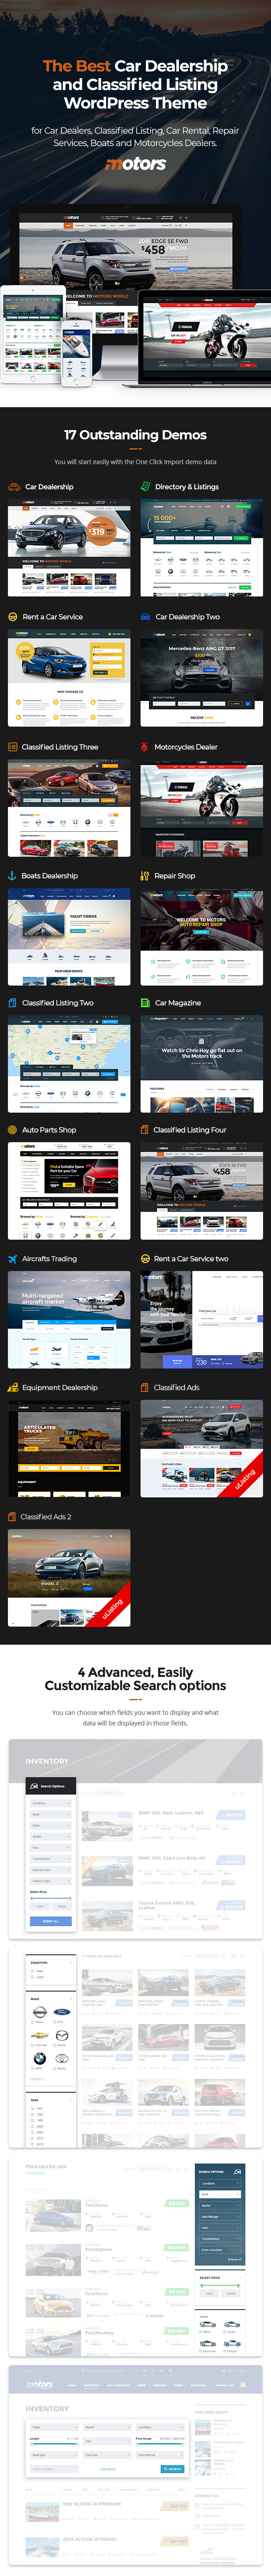 Motors - Car Dealer, Rental & Classifieds WordPress theme - 4